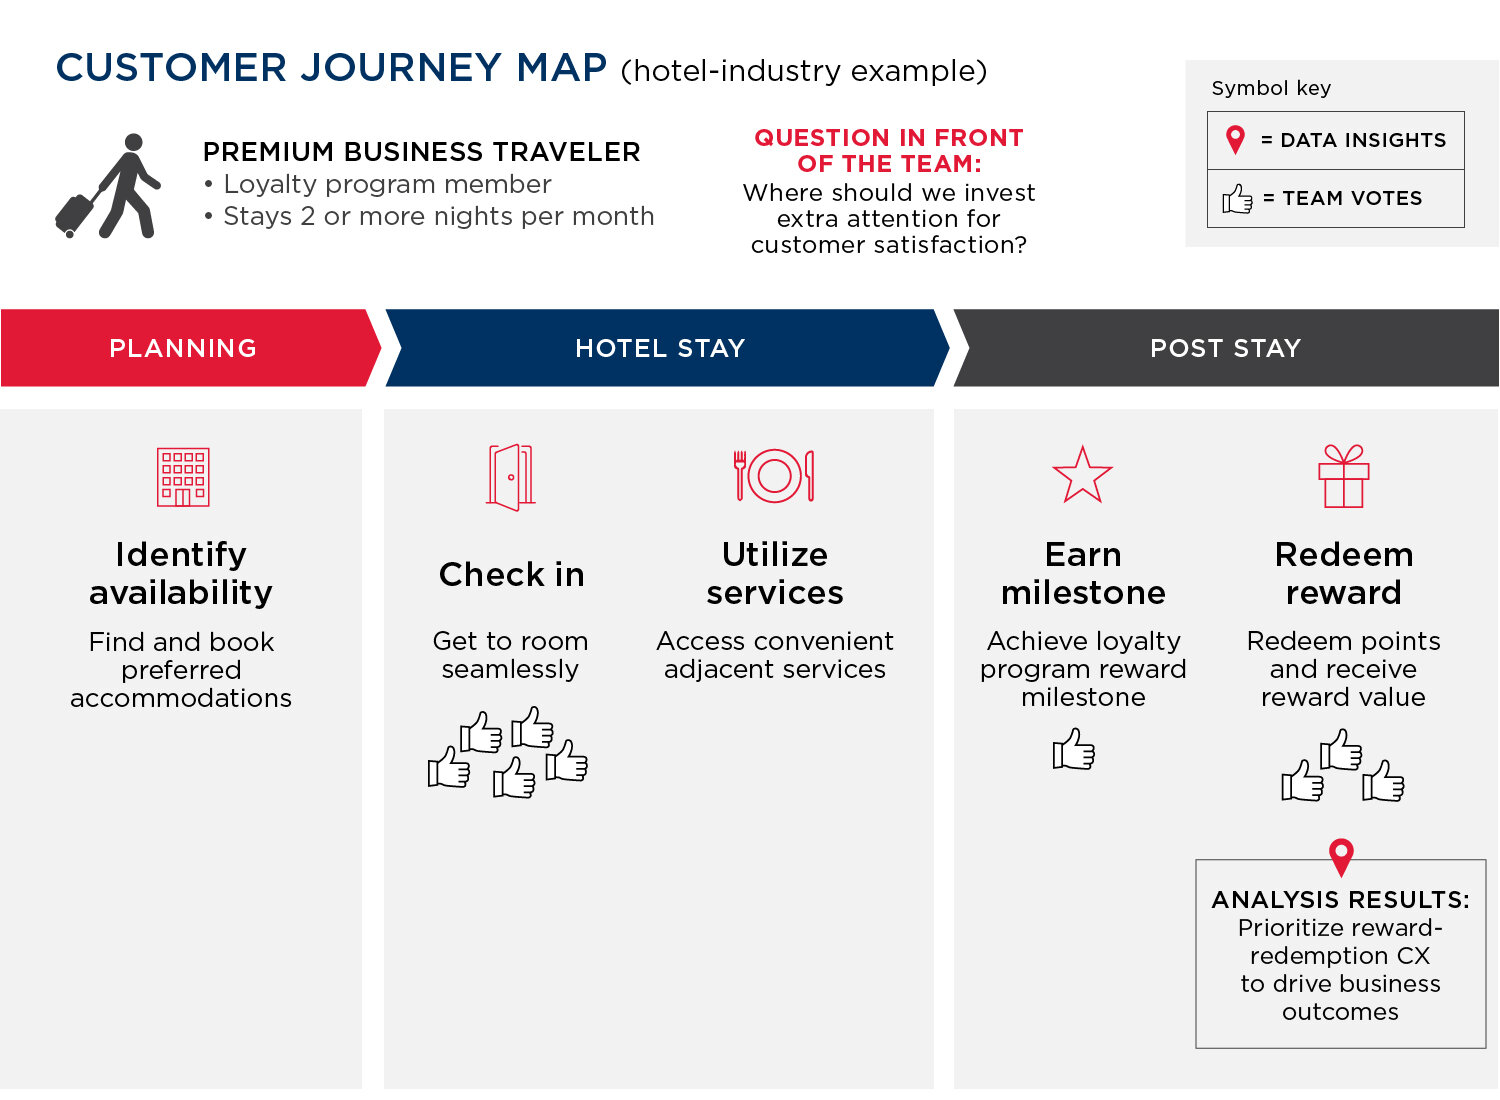 CustomerJourneyMap_V2